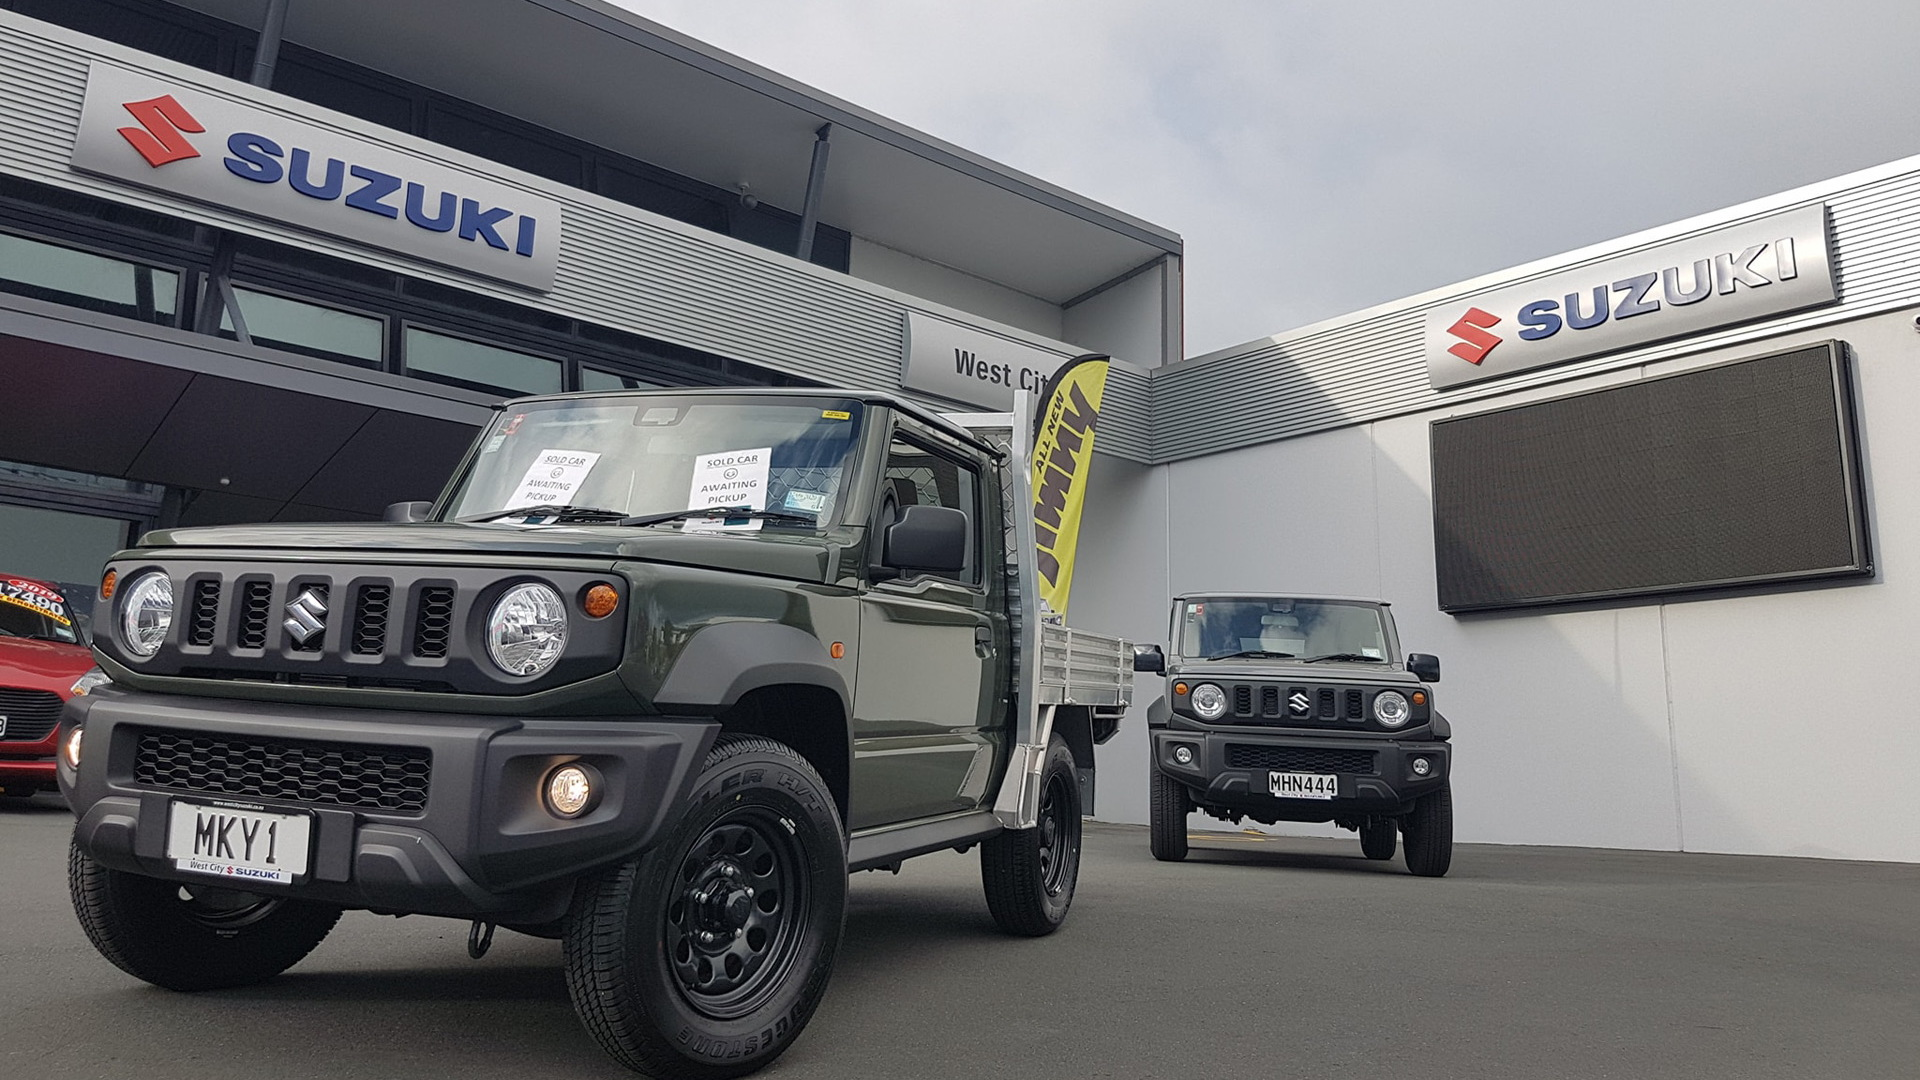 2019 Suzuki Jimny Flatdeck pickup truck conversion - Photo credit: West City Suzuki/Facebook